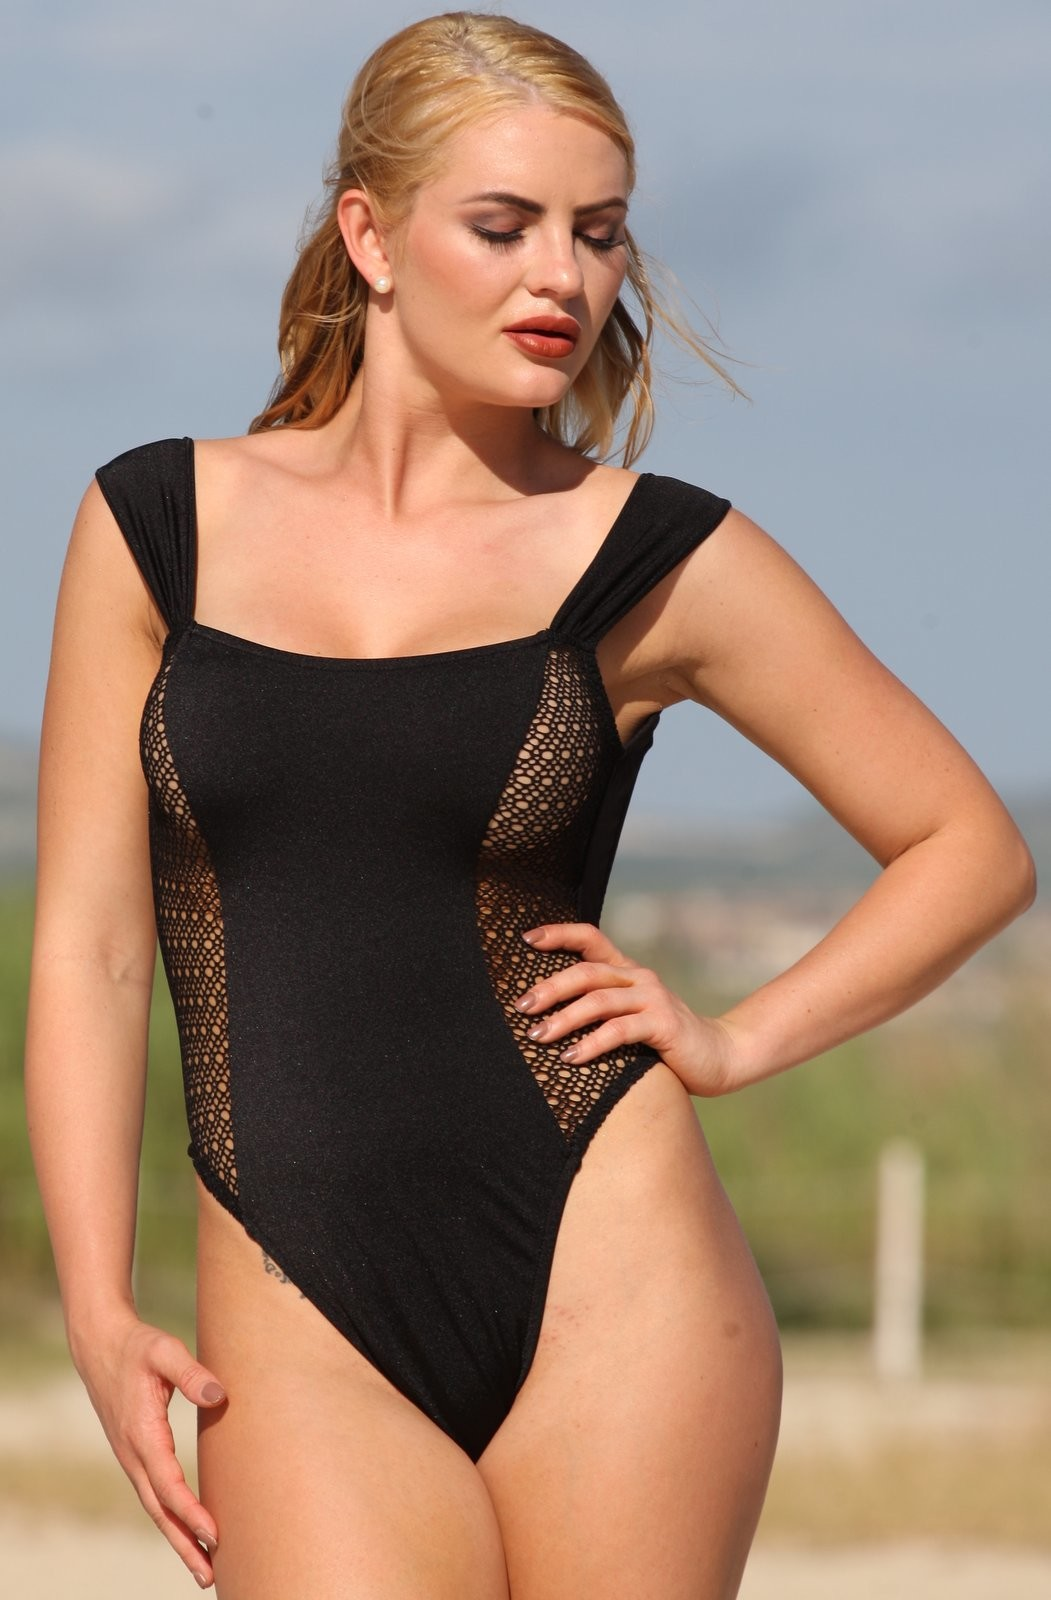 7ddb471eaa07c Ujena La Risque One Piece Bathing Suit